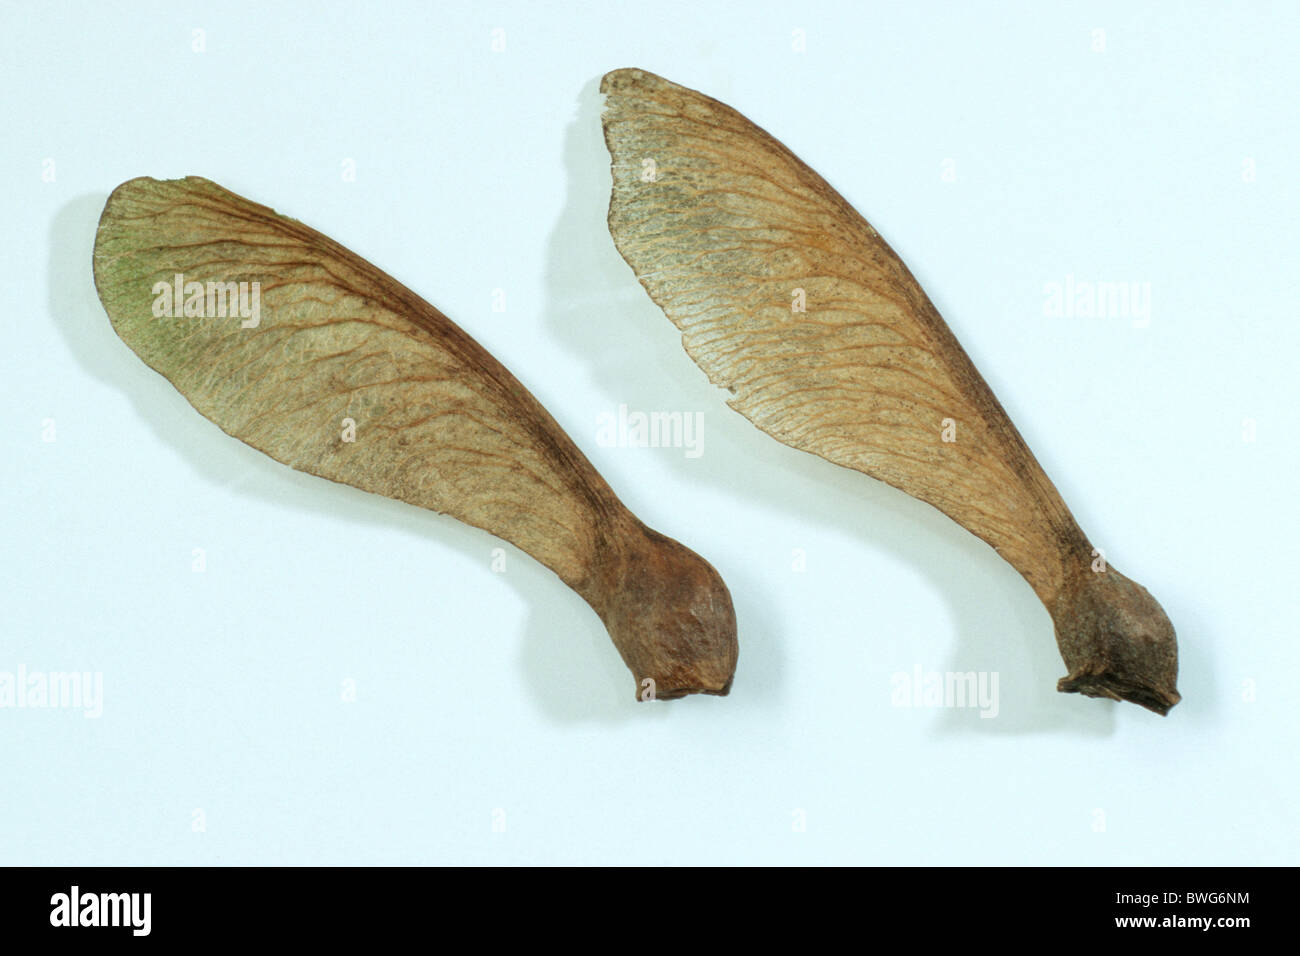 Sycamore, Sycamore Maple (Acer pseudoplatanus), seeds, studio picture. Stock Photo